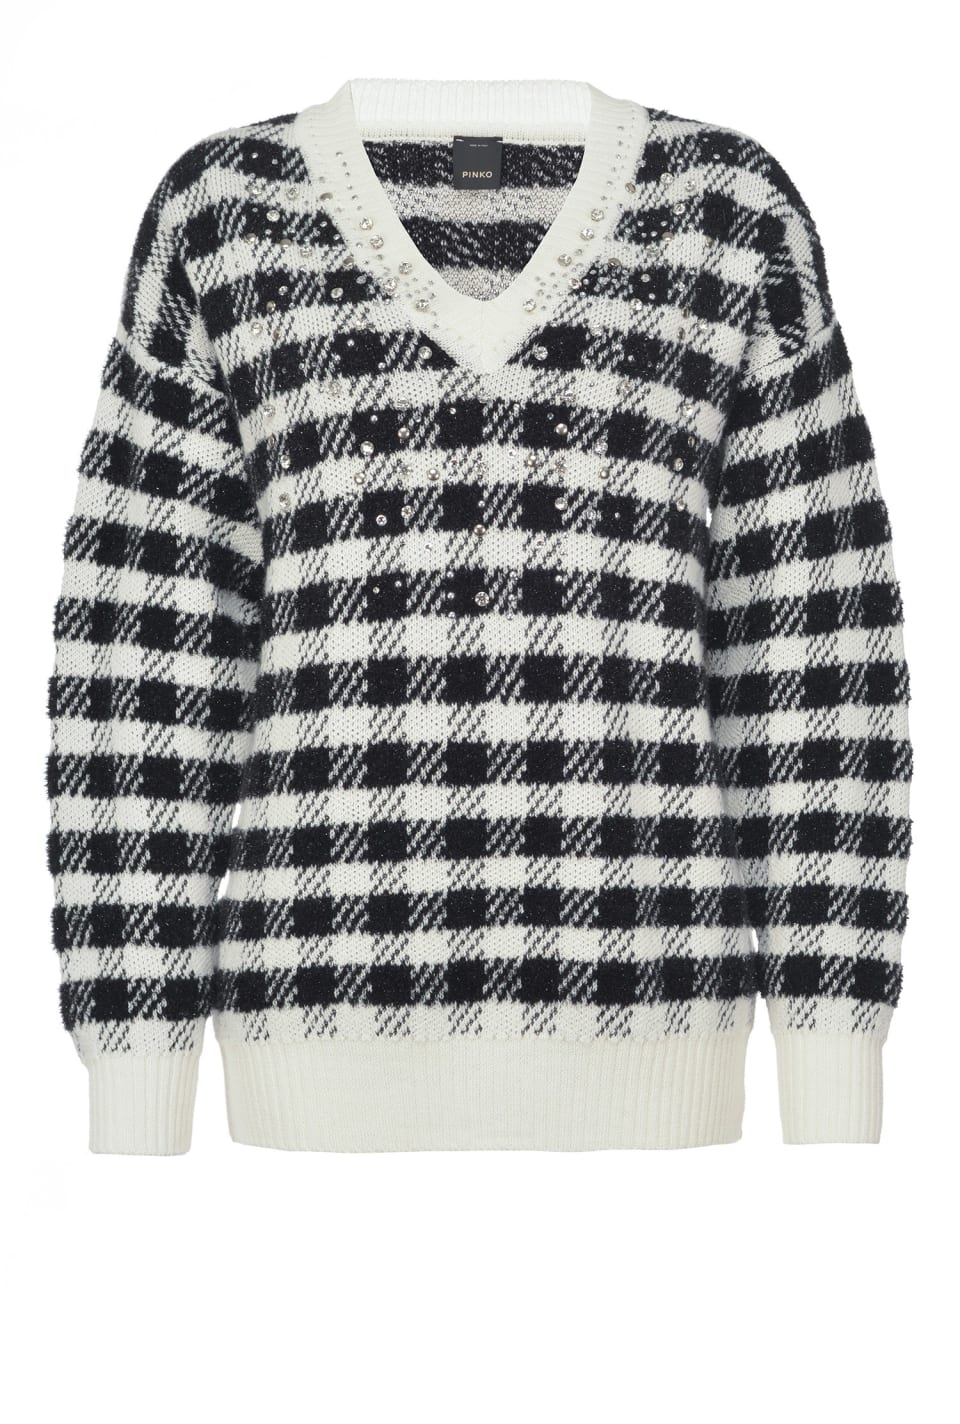 Checked jacquard pullover with rhinestones - Pinko